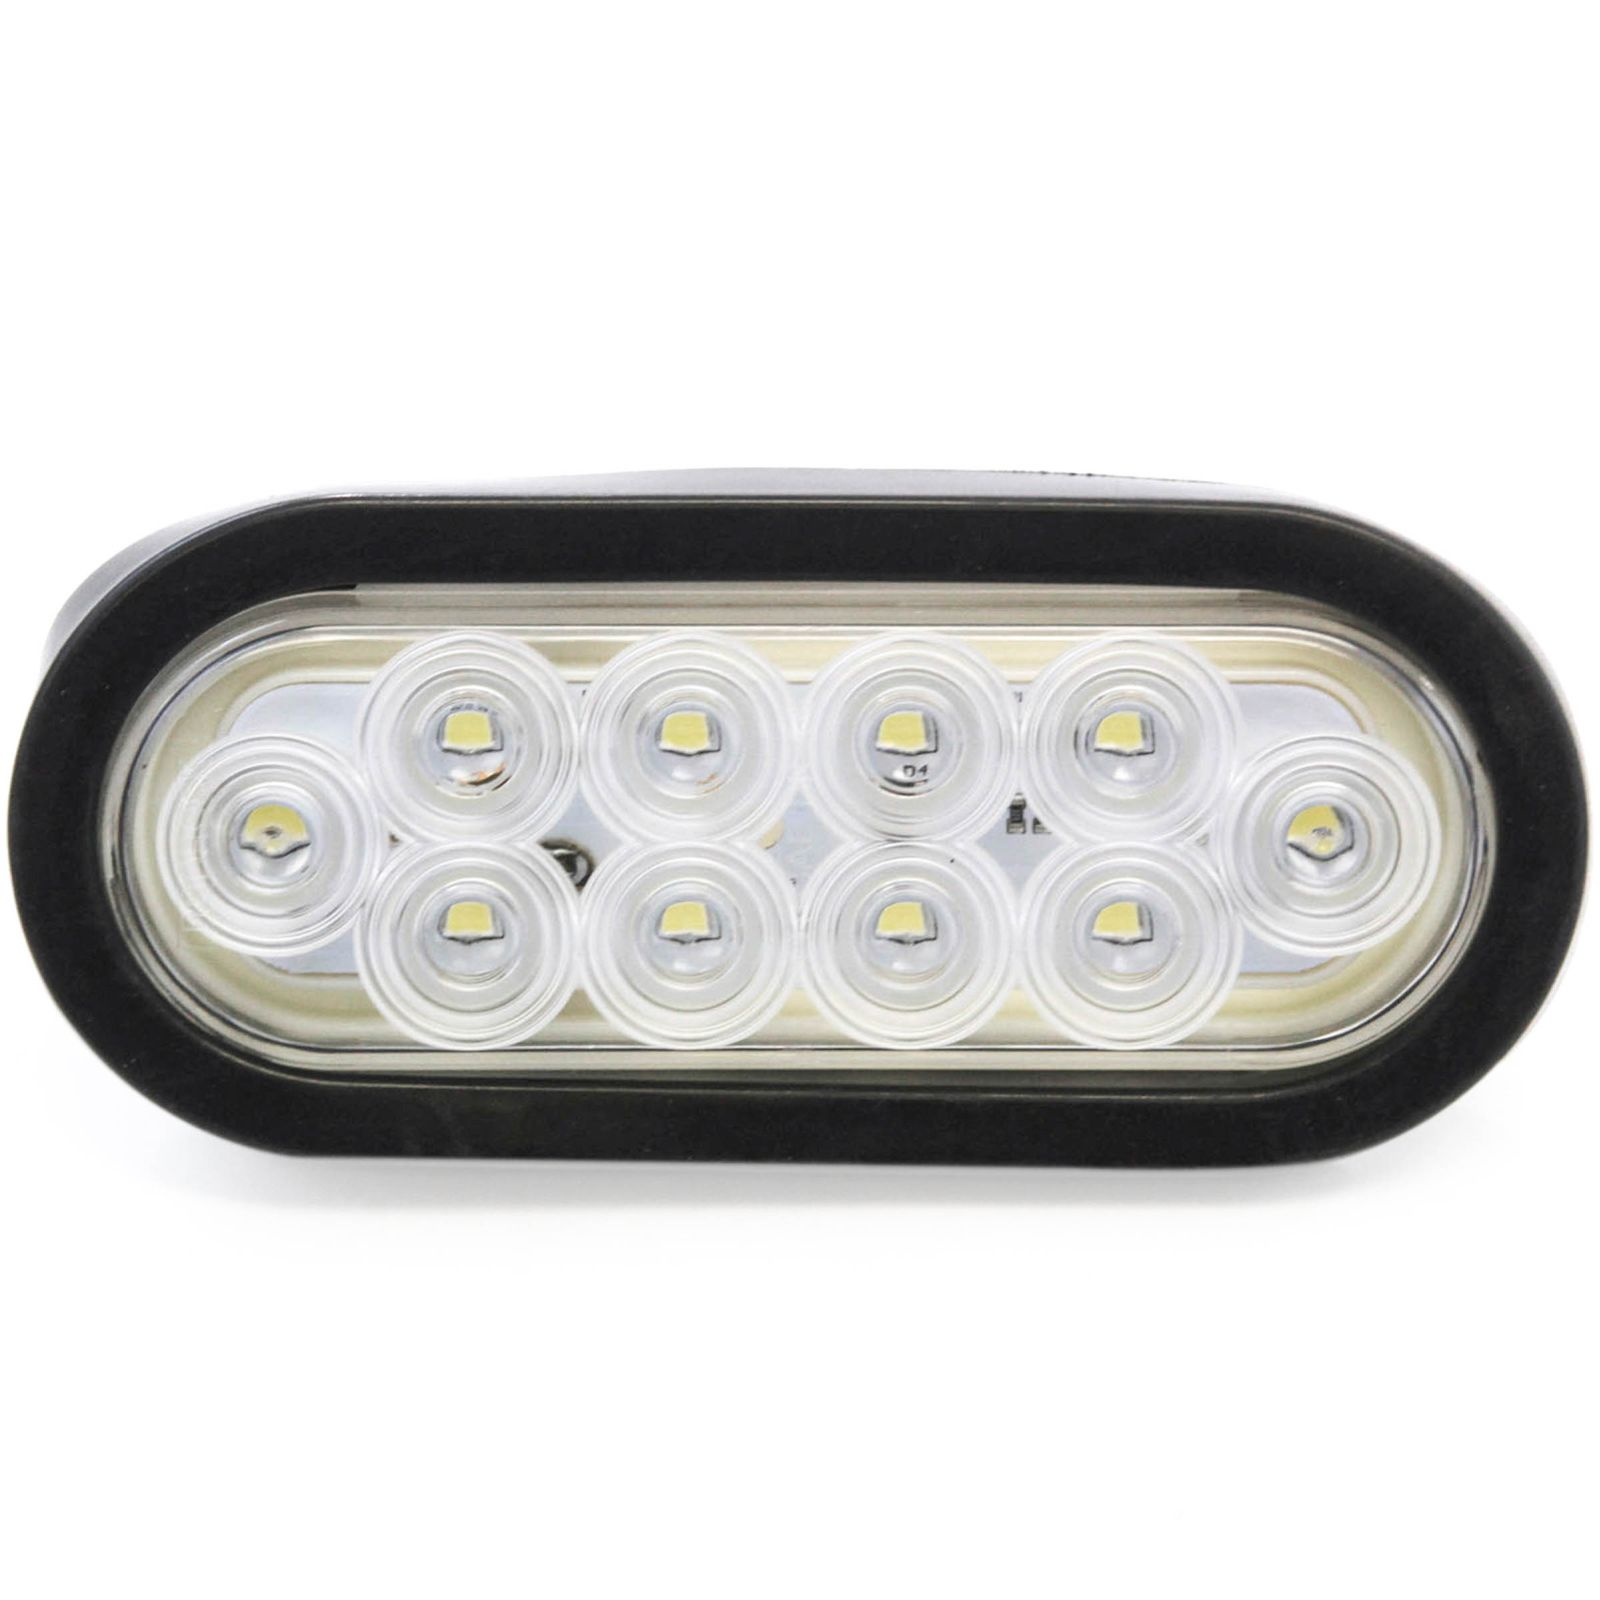 "6"" Oval Clear LED Reverse Back-up Light Flush Mount Trailer Truck -  Walmart.com"